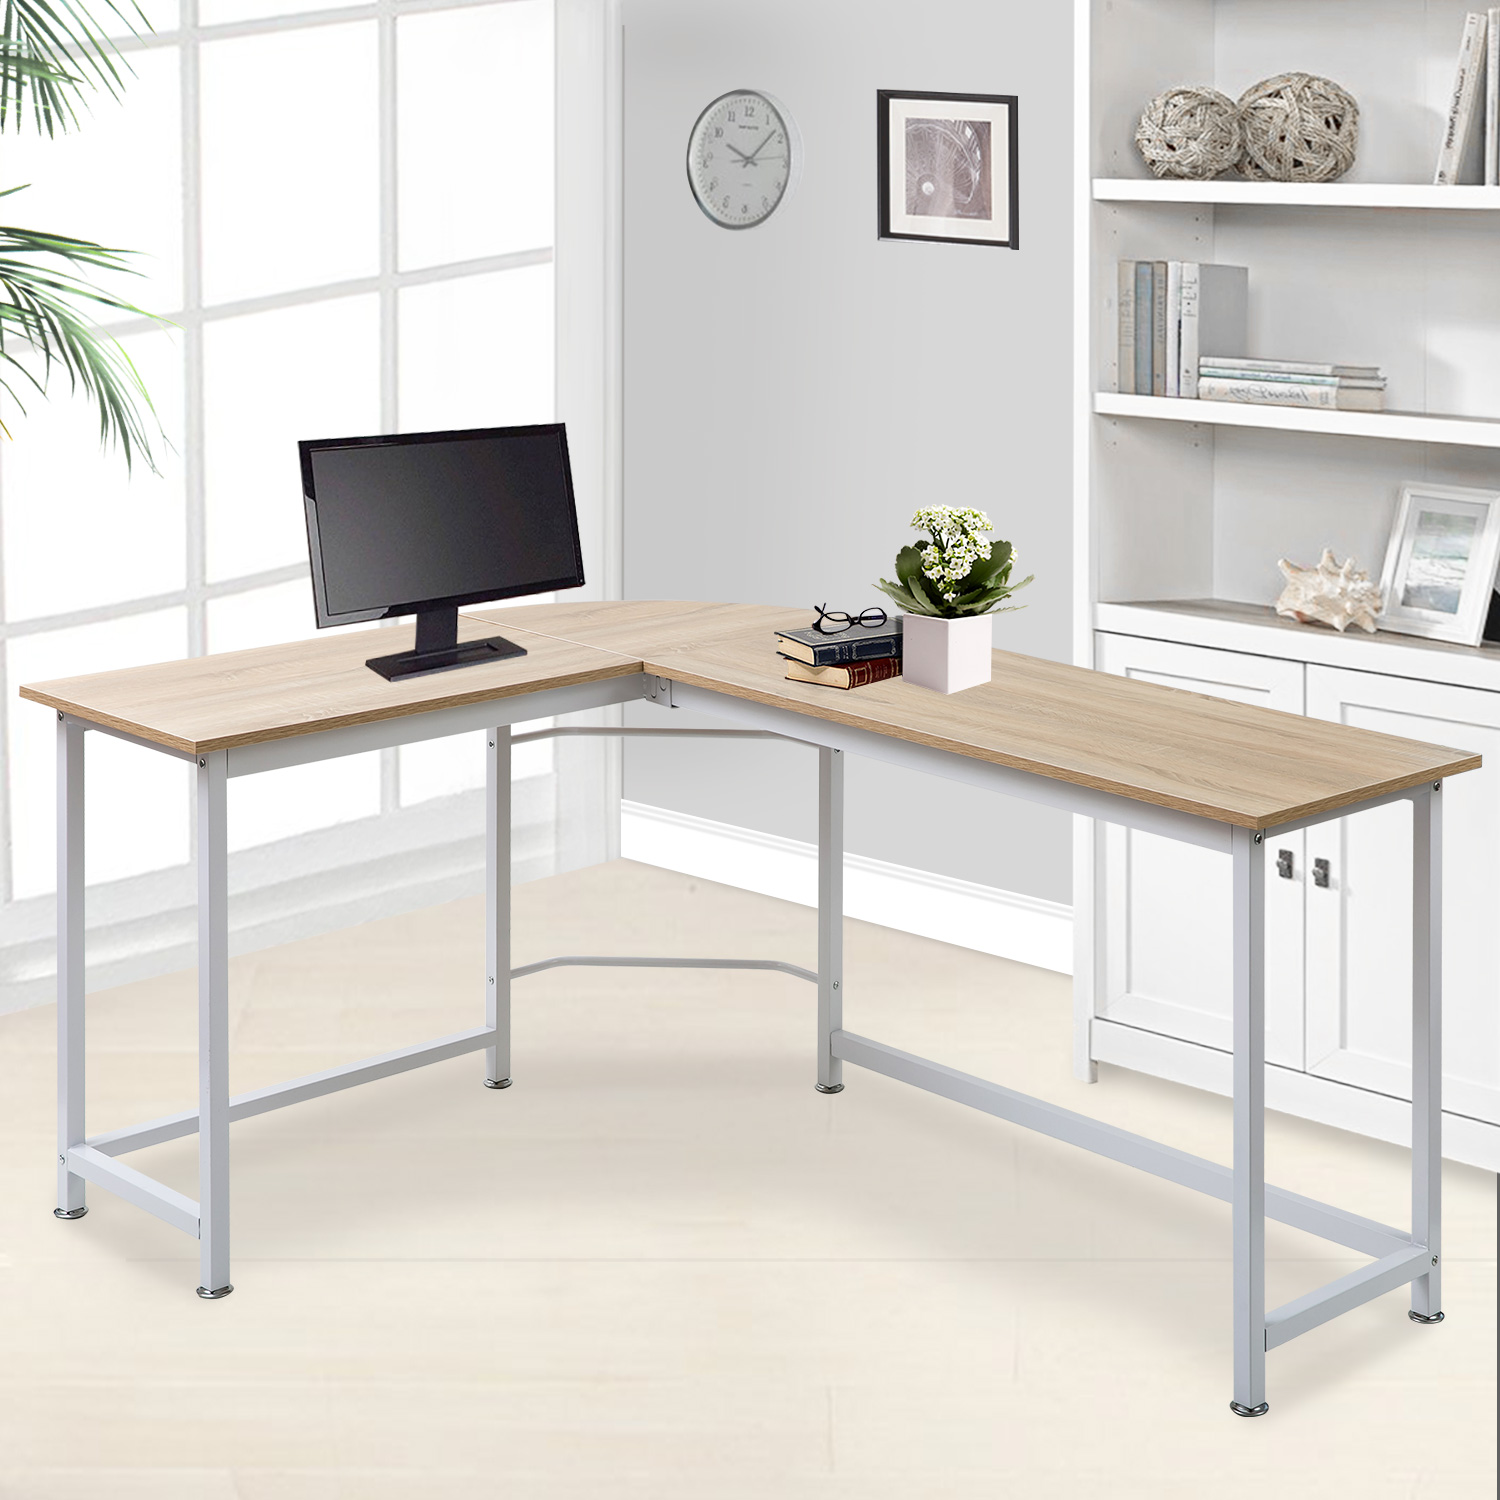 Contemporary desks for home office Chair Modern Luxe Lshape Home Office Corner Computer Desk Pc Laptop Table Workstation Wood Metal Walmartcom Alibaba Modern Luxe Lshape Home Office Corner Computer Desk Pc Laptop Table